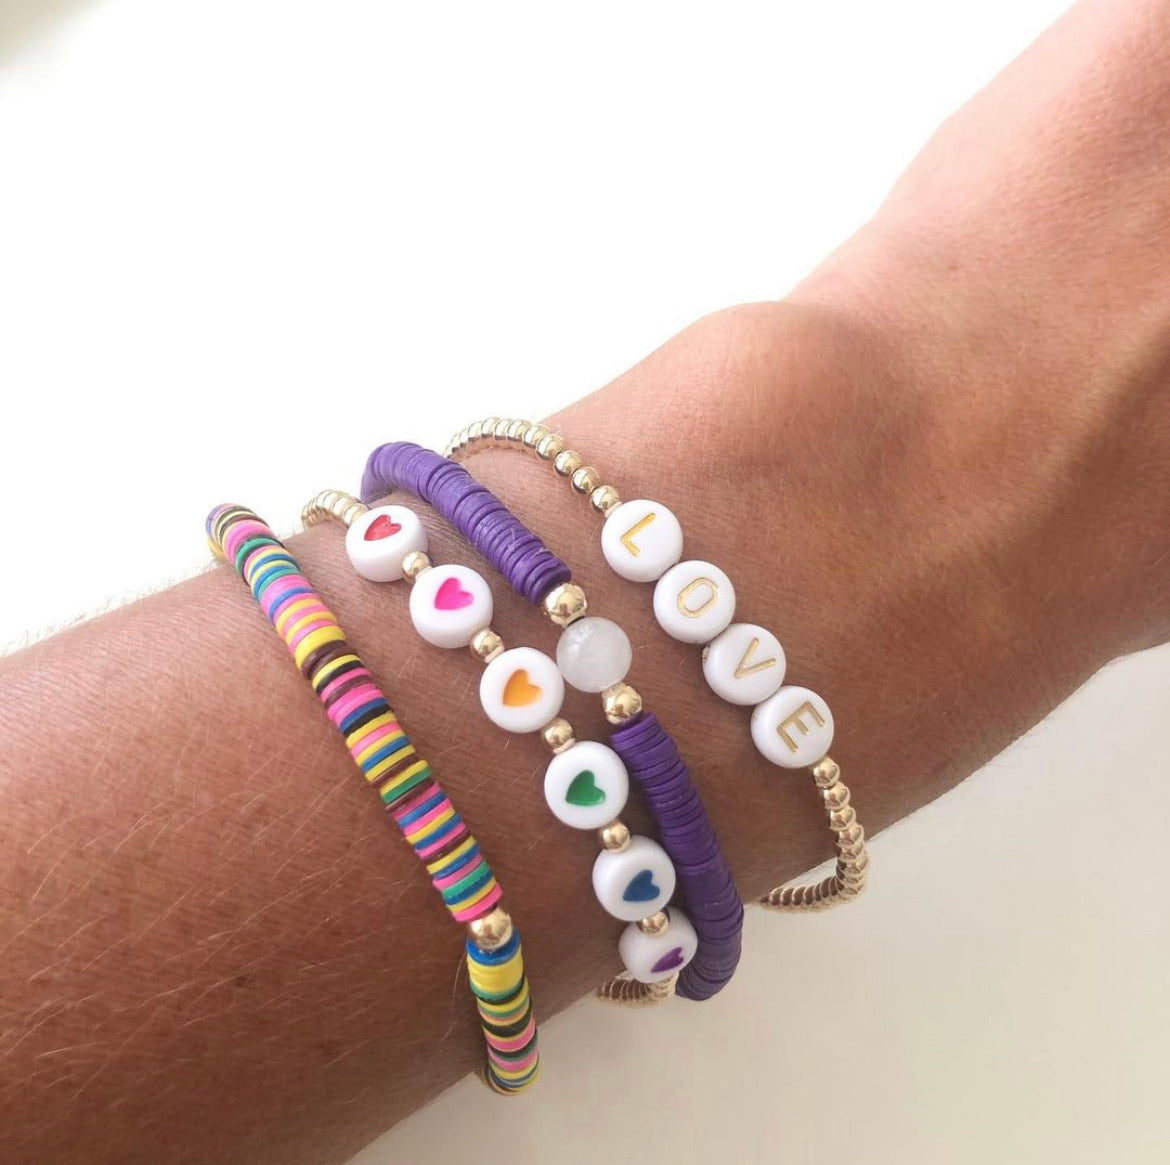 The Dana Rainbow Heart Bracelet